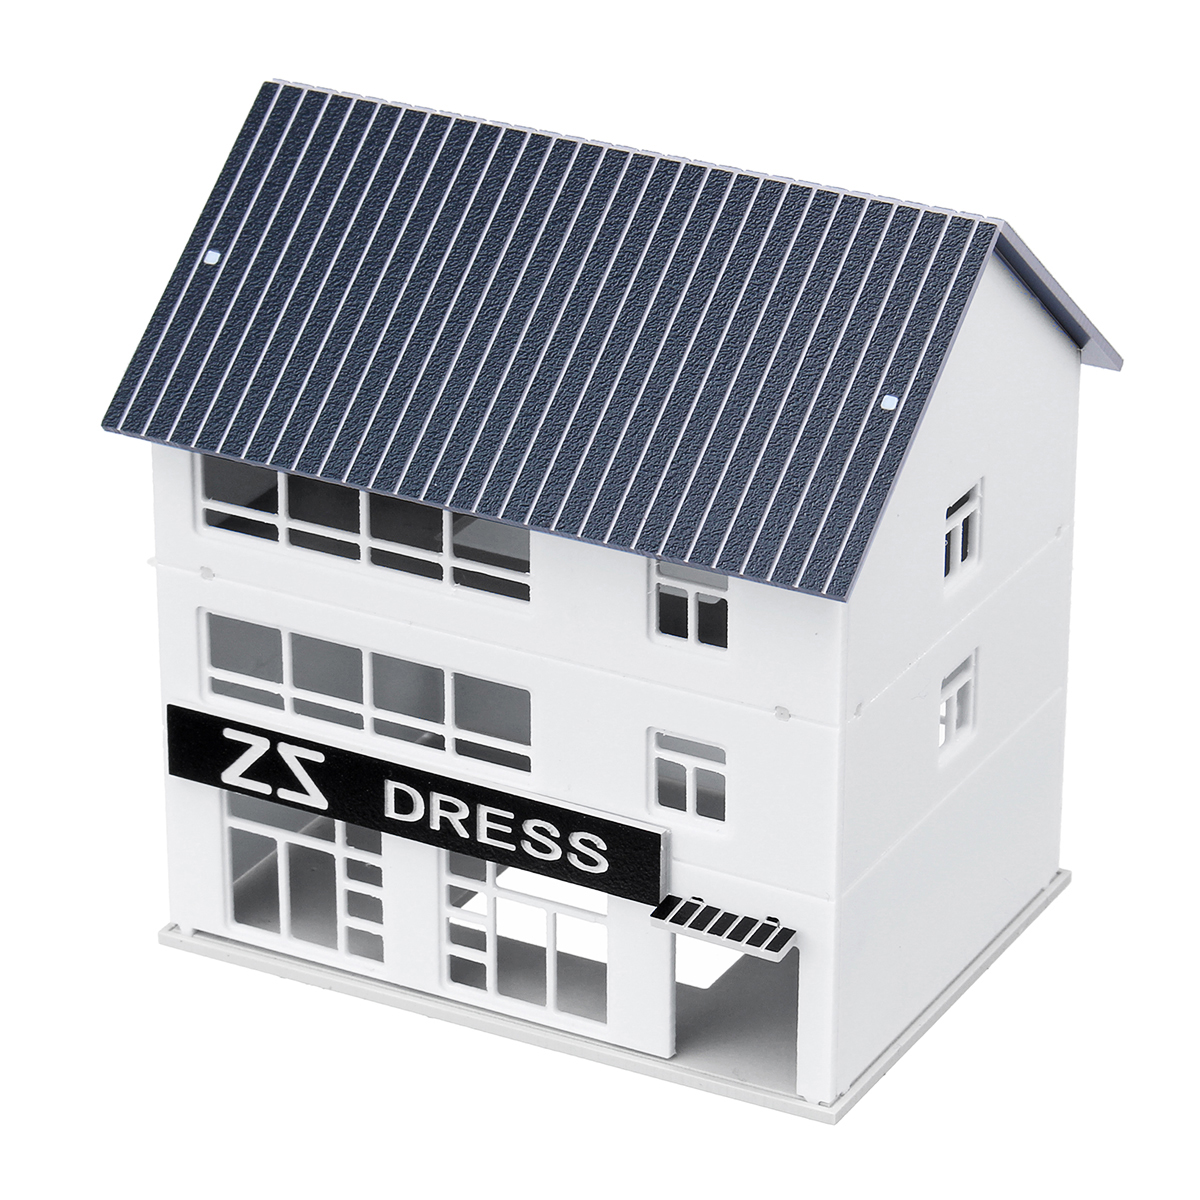 1/150 Outland Building Model N Scale Gauge Scene Story Dress Store Modern House